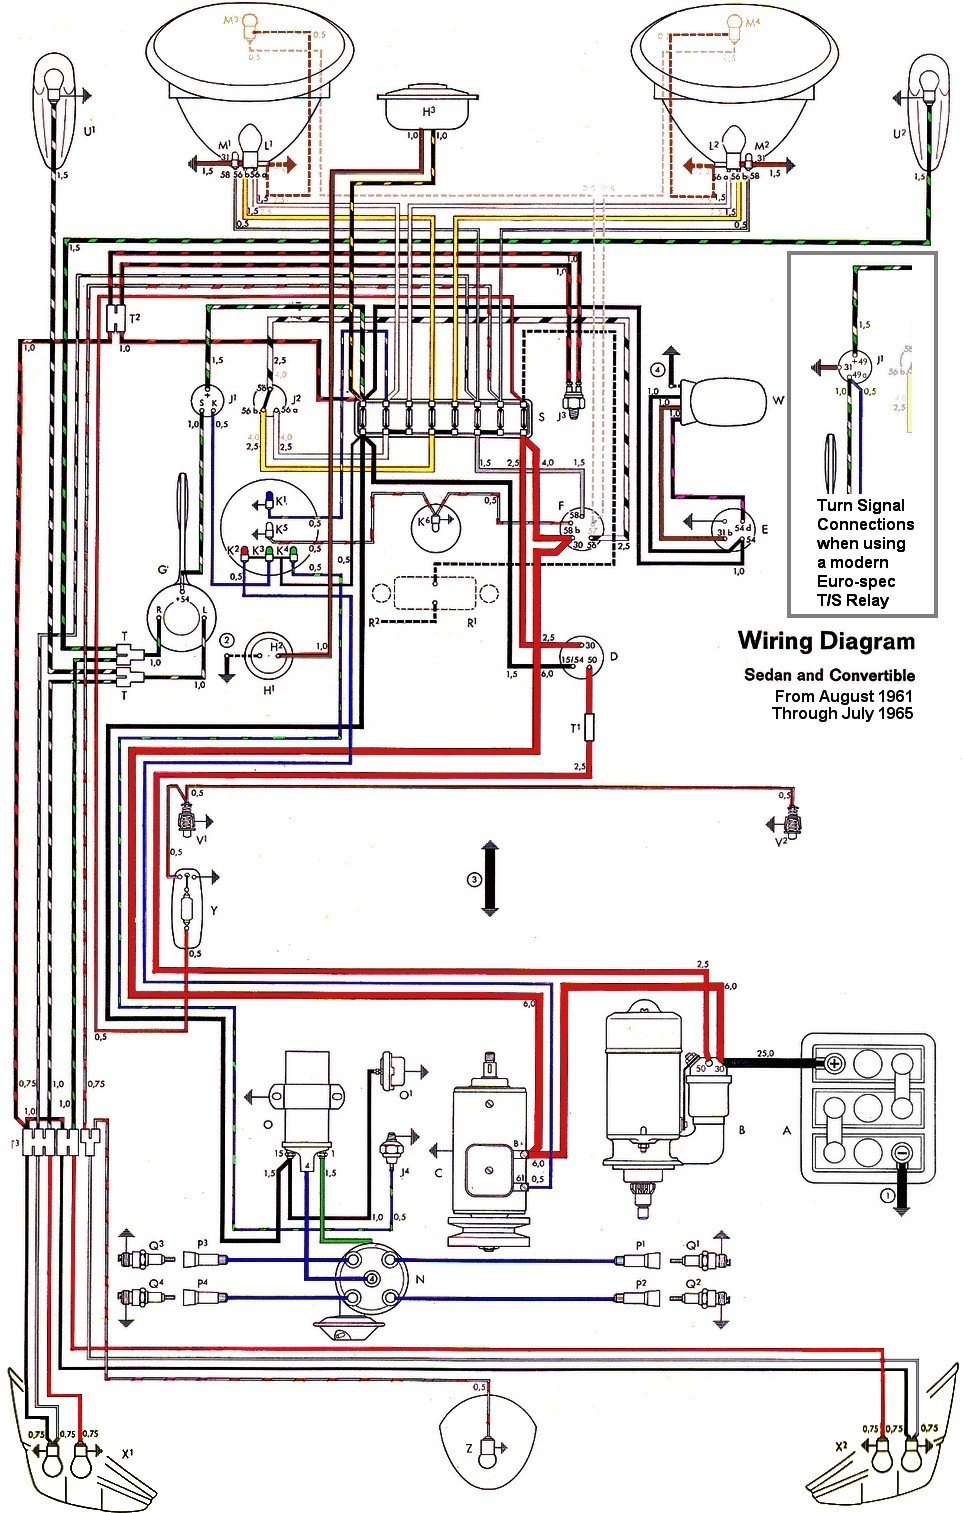 thesamba com type 1 wiring diagrams rh thesamba com 1973 super beetle fuse box diagram 1973 vw beetle wire diagram